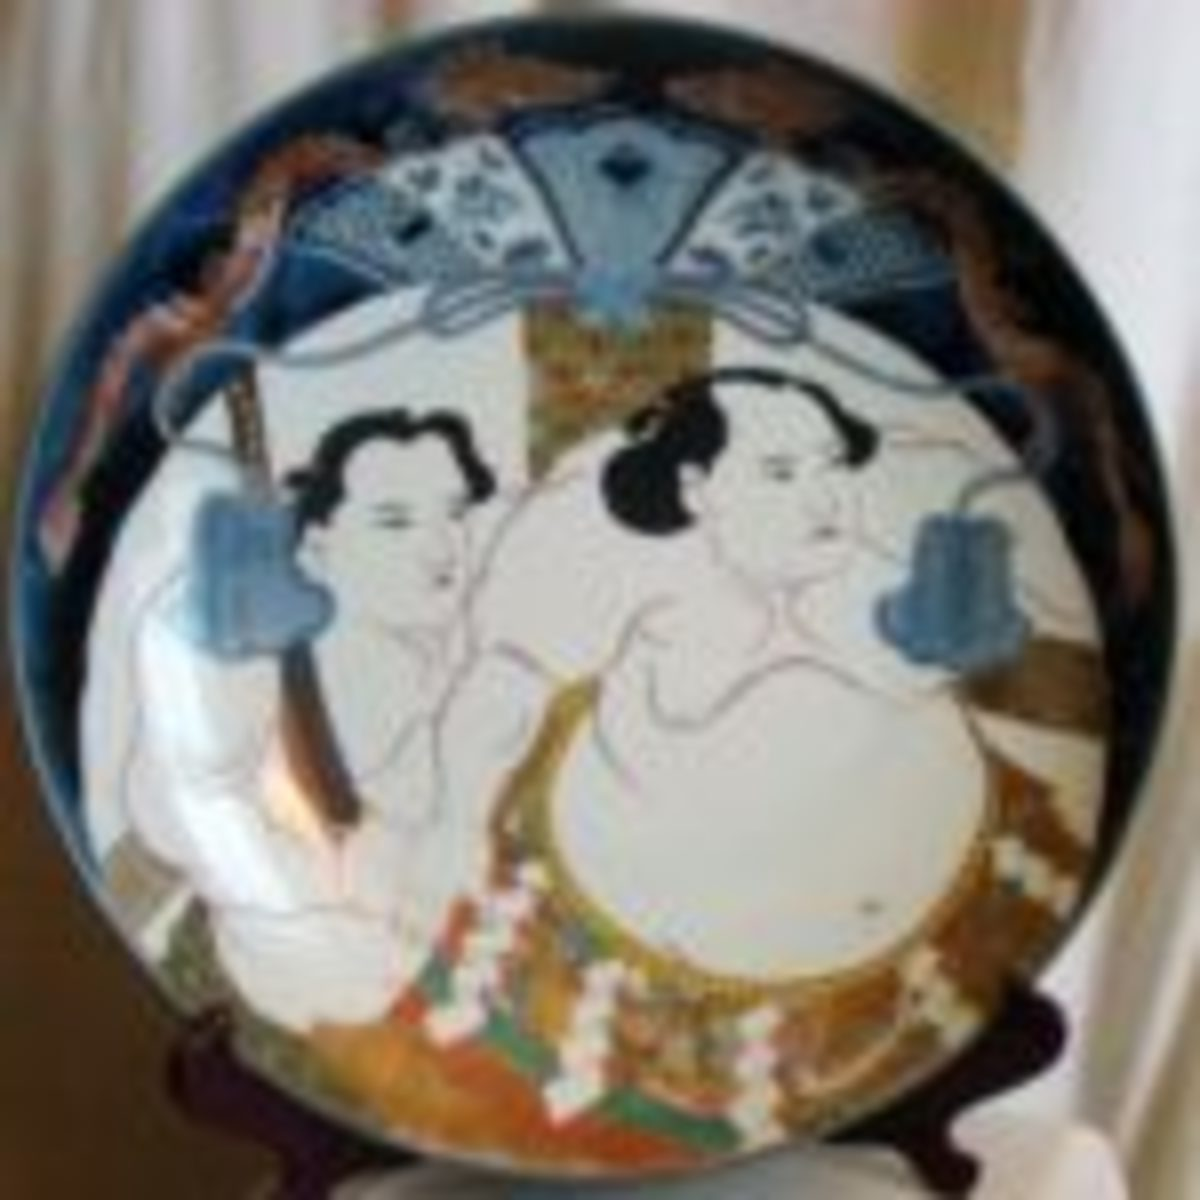 Imari charger featuring Sumo wrestlers